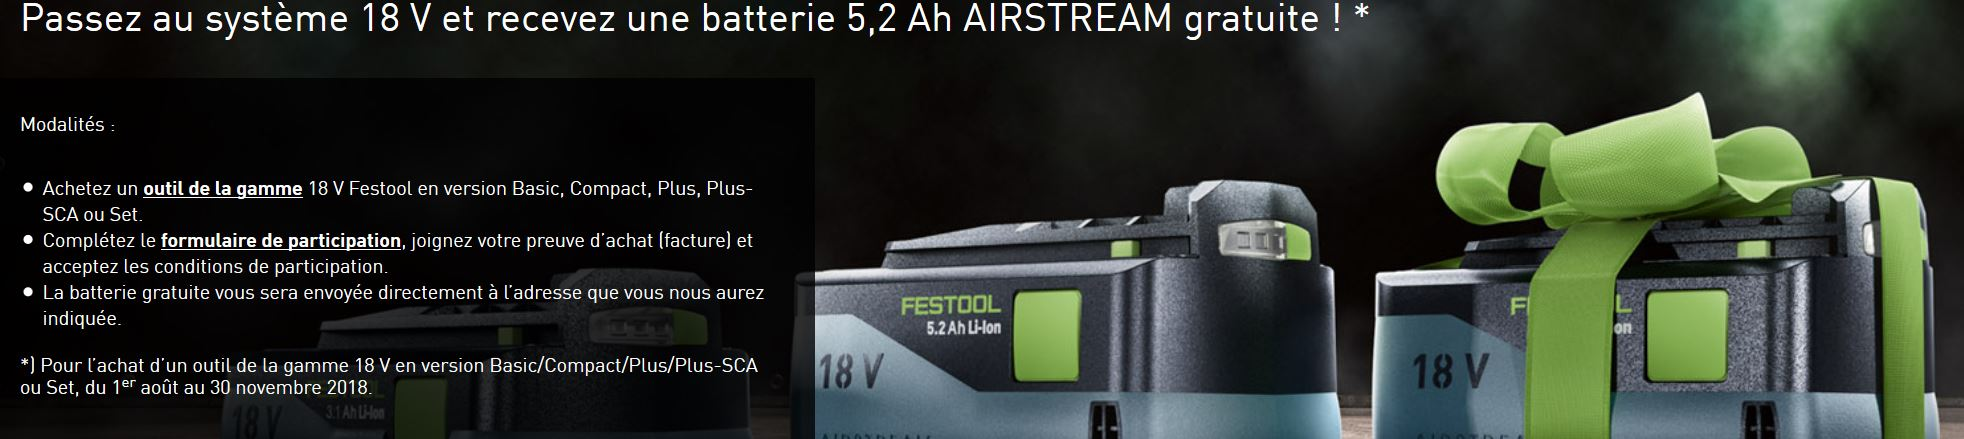 Action Festool Batteries 2018